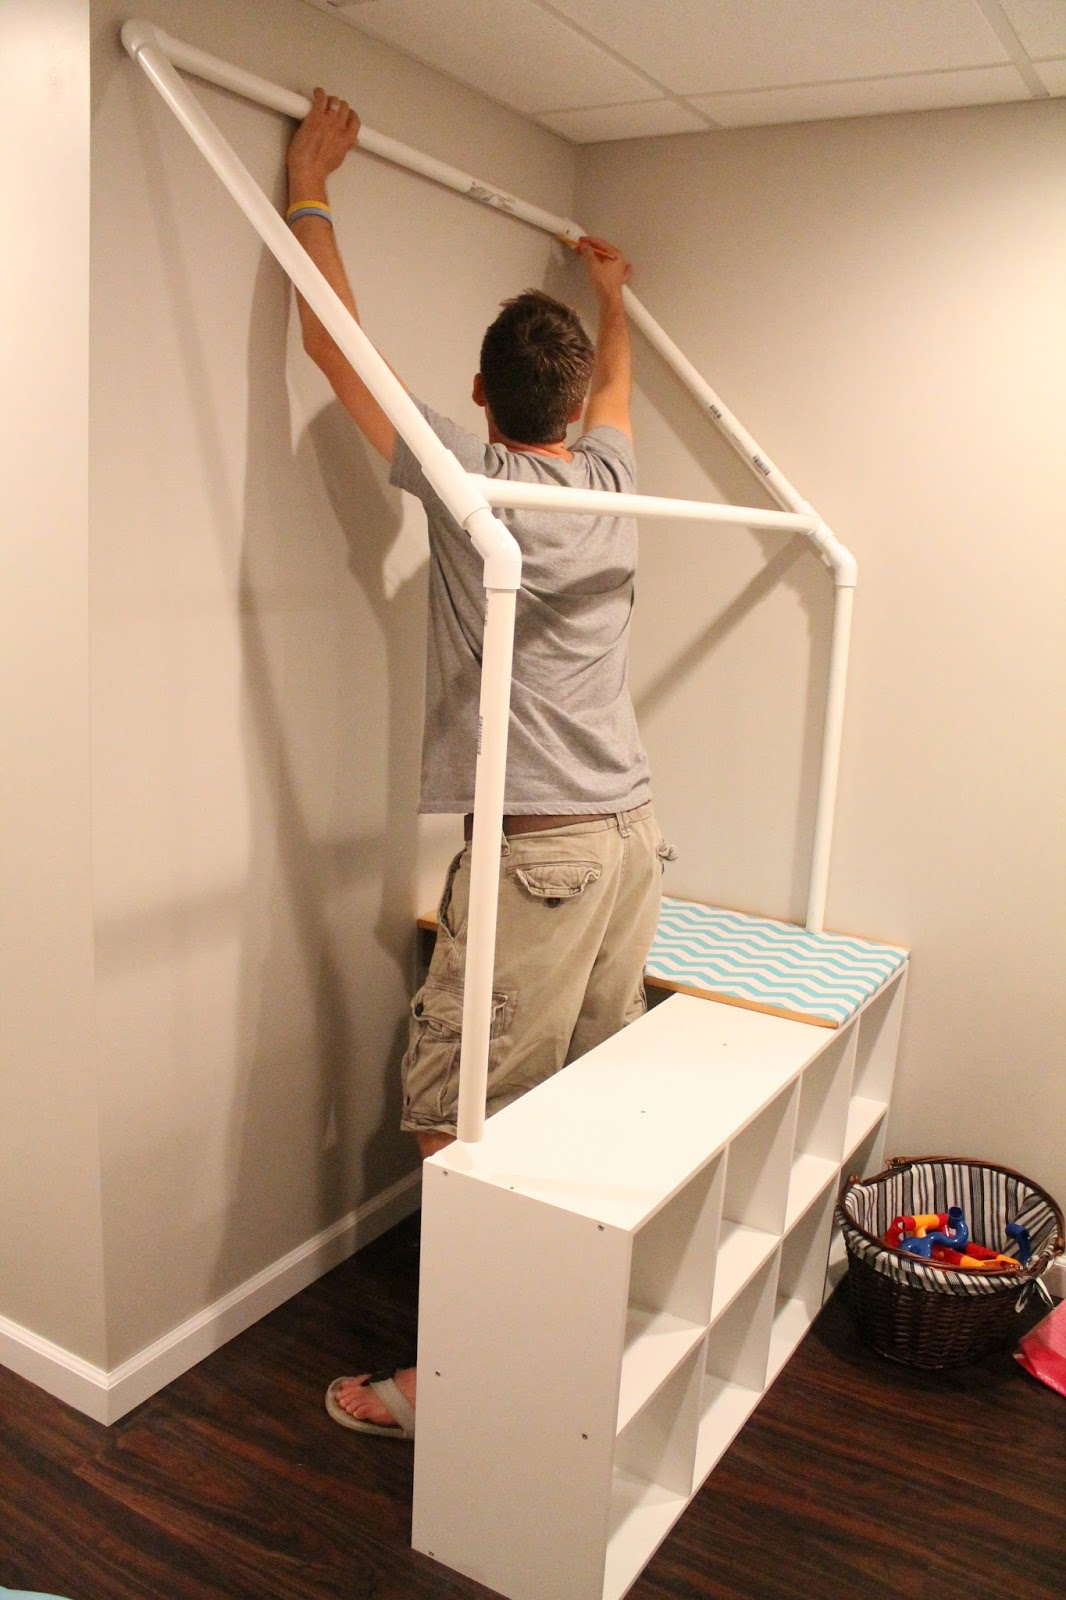 Pvc Pipe Bookshelf Diy Pvc Childrens Grocery Store Tutorial So You Think Youre